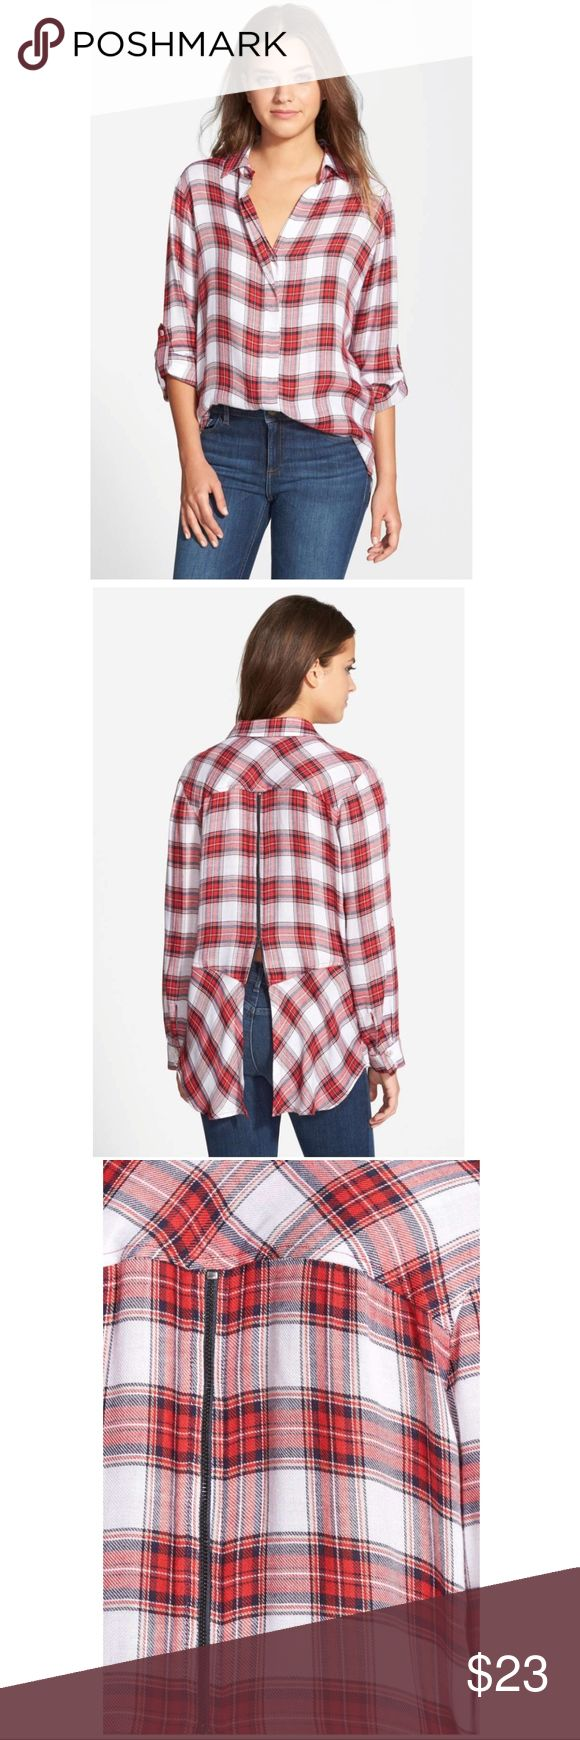 EUC Sam Edelman zip-back plaid shirt sz XS Sam Edelman plaid top with split hem zippered back, size XS.  Very good condition, only worn and washed a few times!  No holes or stains. The material is very soft & delicate and there are a few picks as shown in pictures, but they are all small. (Last 4 pics are actual top for sale, 1st 3 are stock.)  From Nordstrom, highly rated top, currently sold out. Sam Edelman Tops